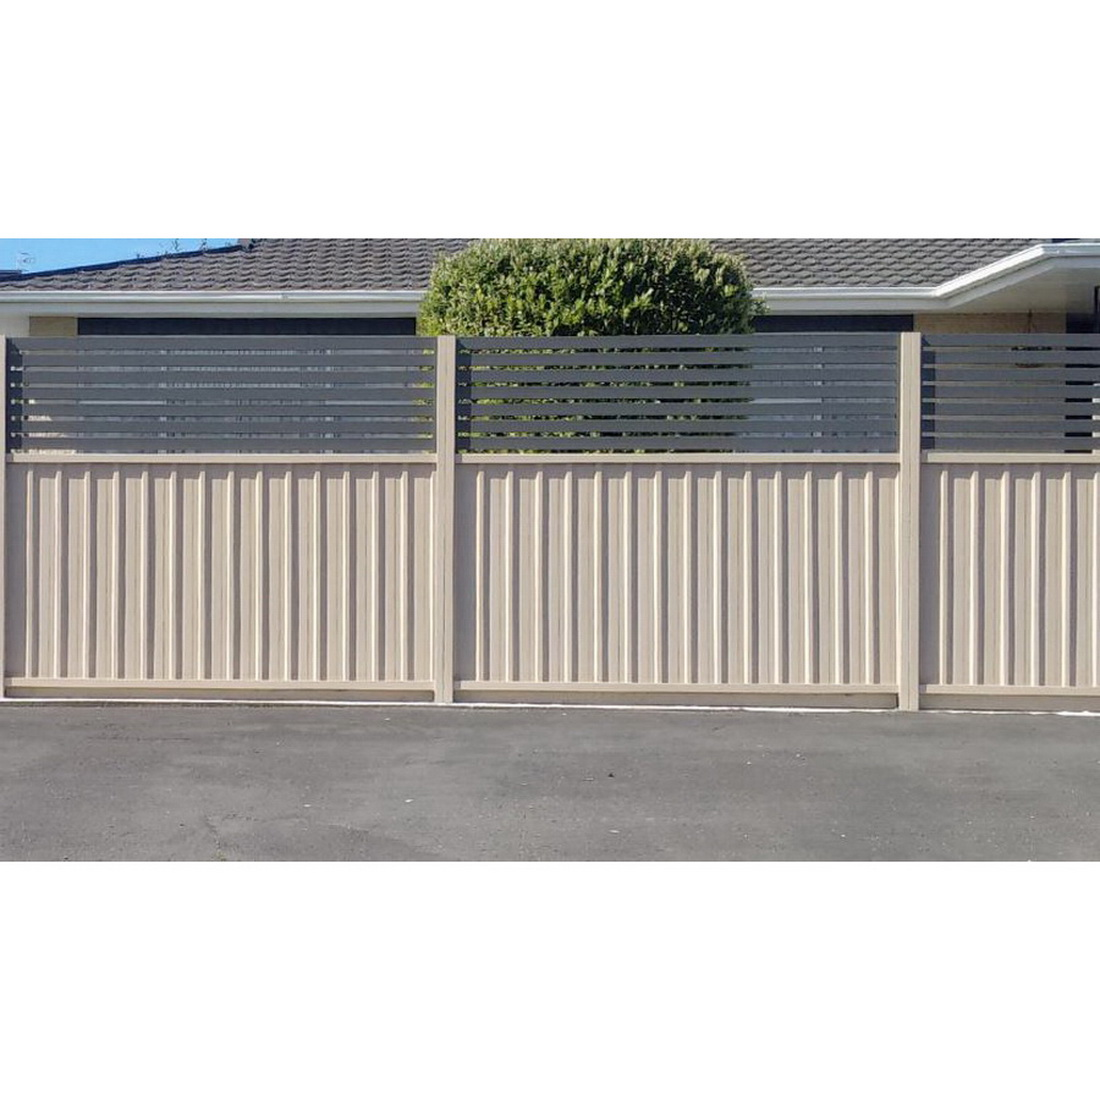 Borderline 1.2/6 Fence Panel 1800 x 2300mm Ironsand